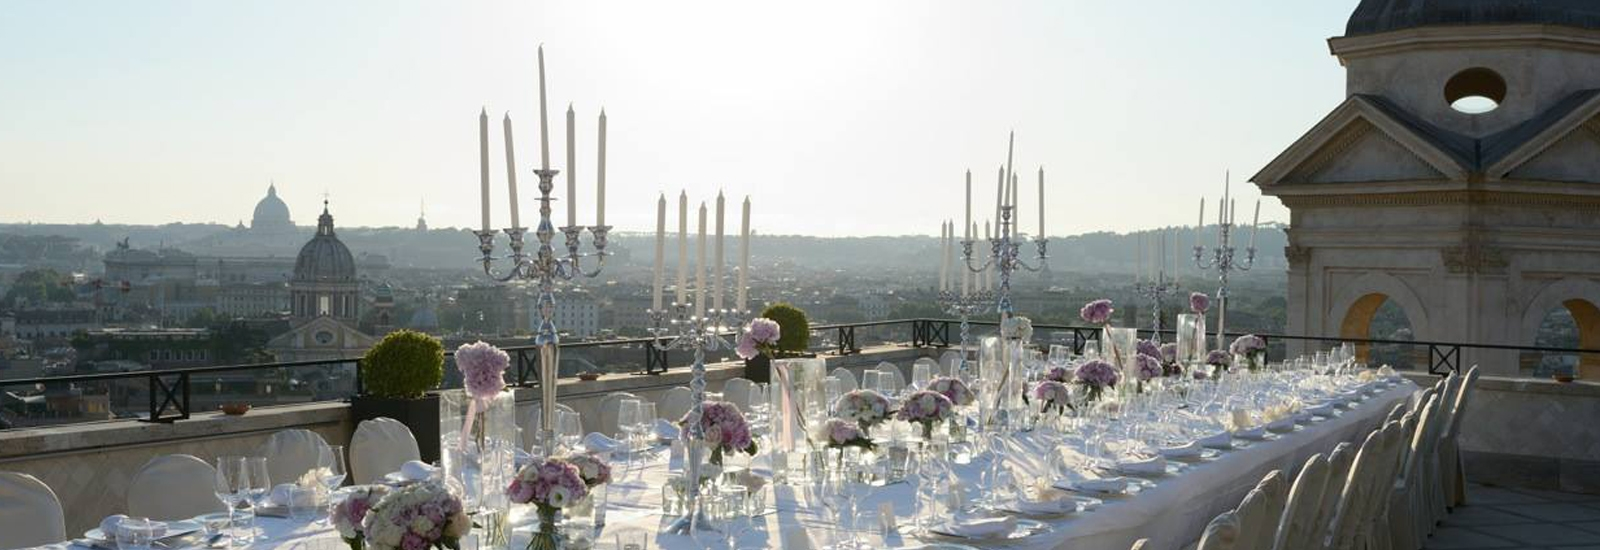 Spanish Steps Rome wedding venue